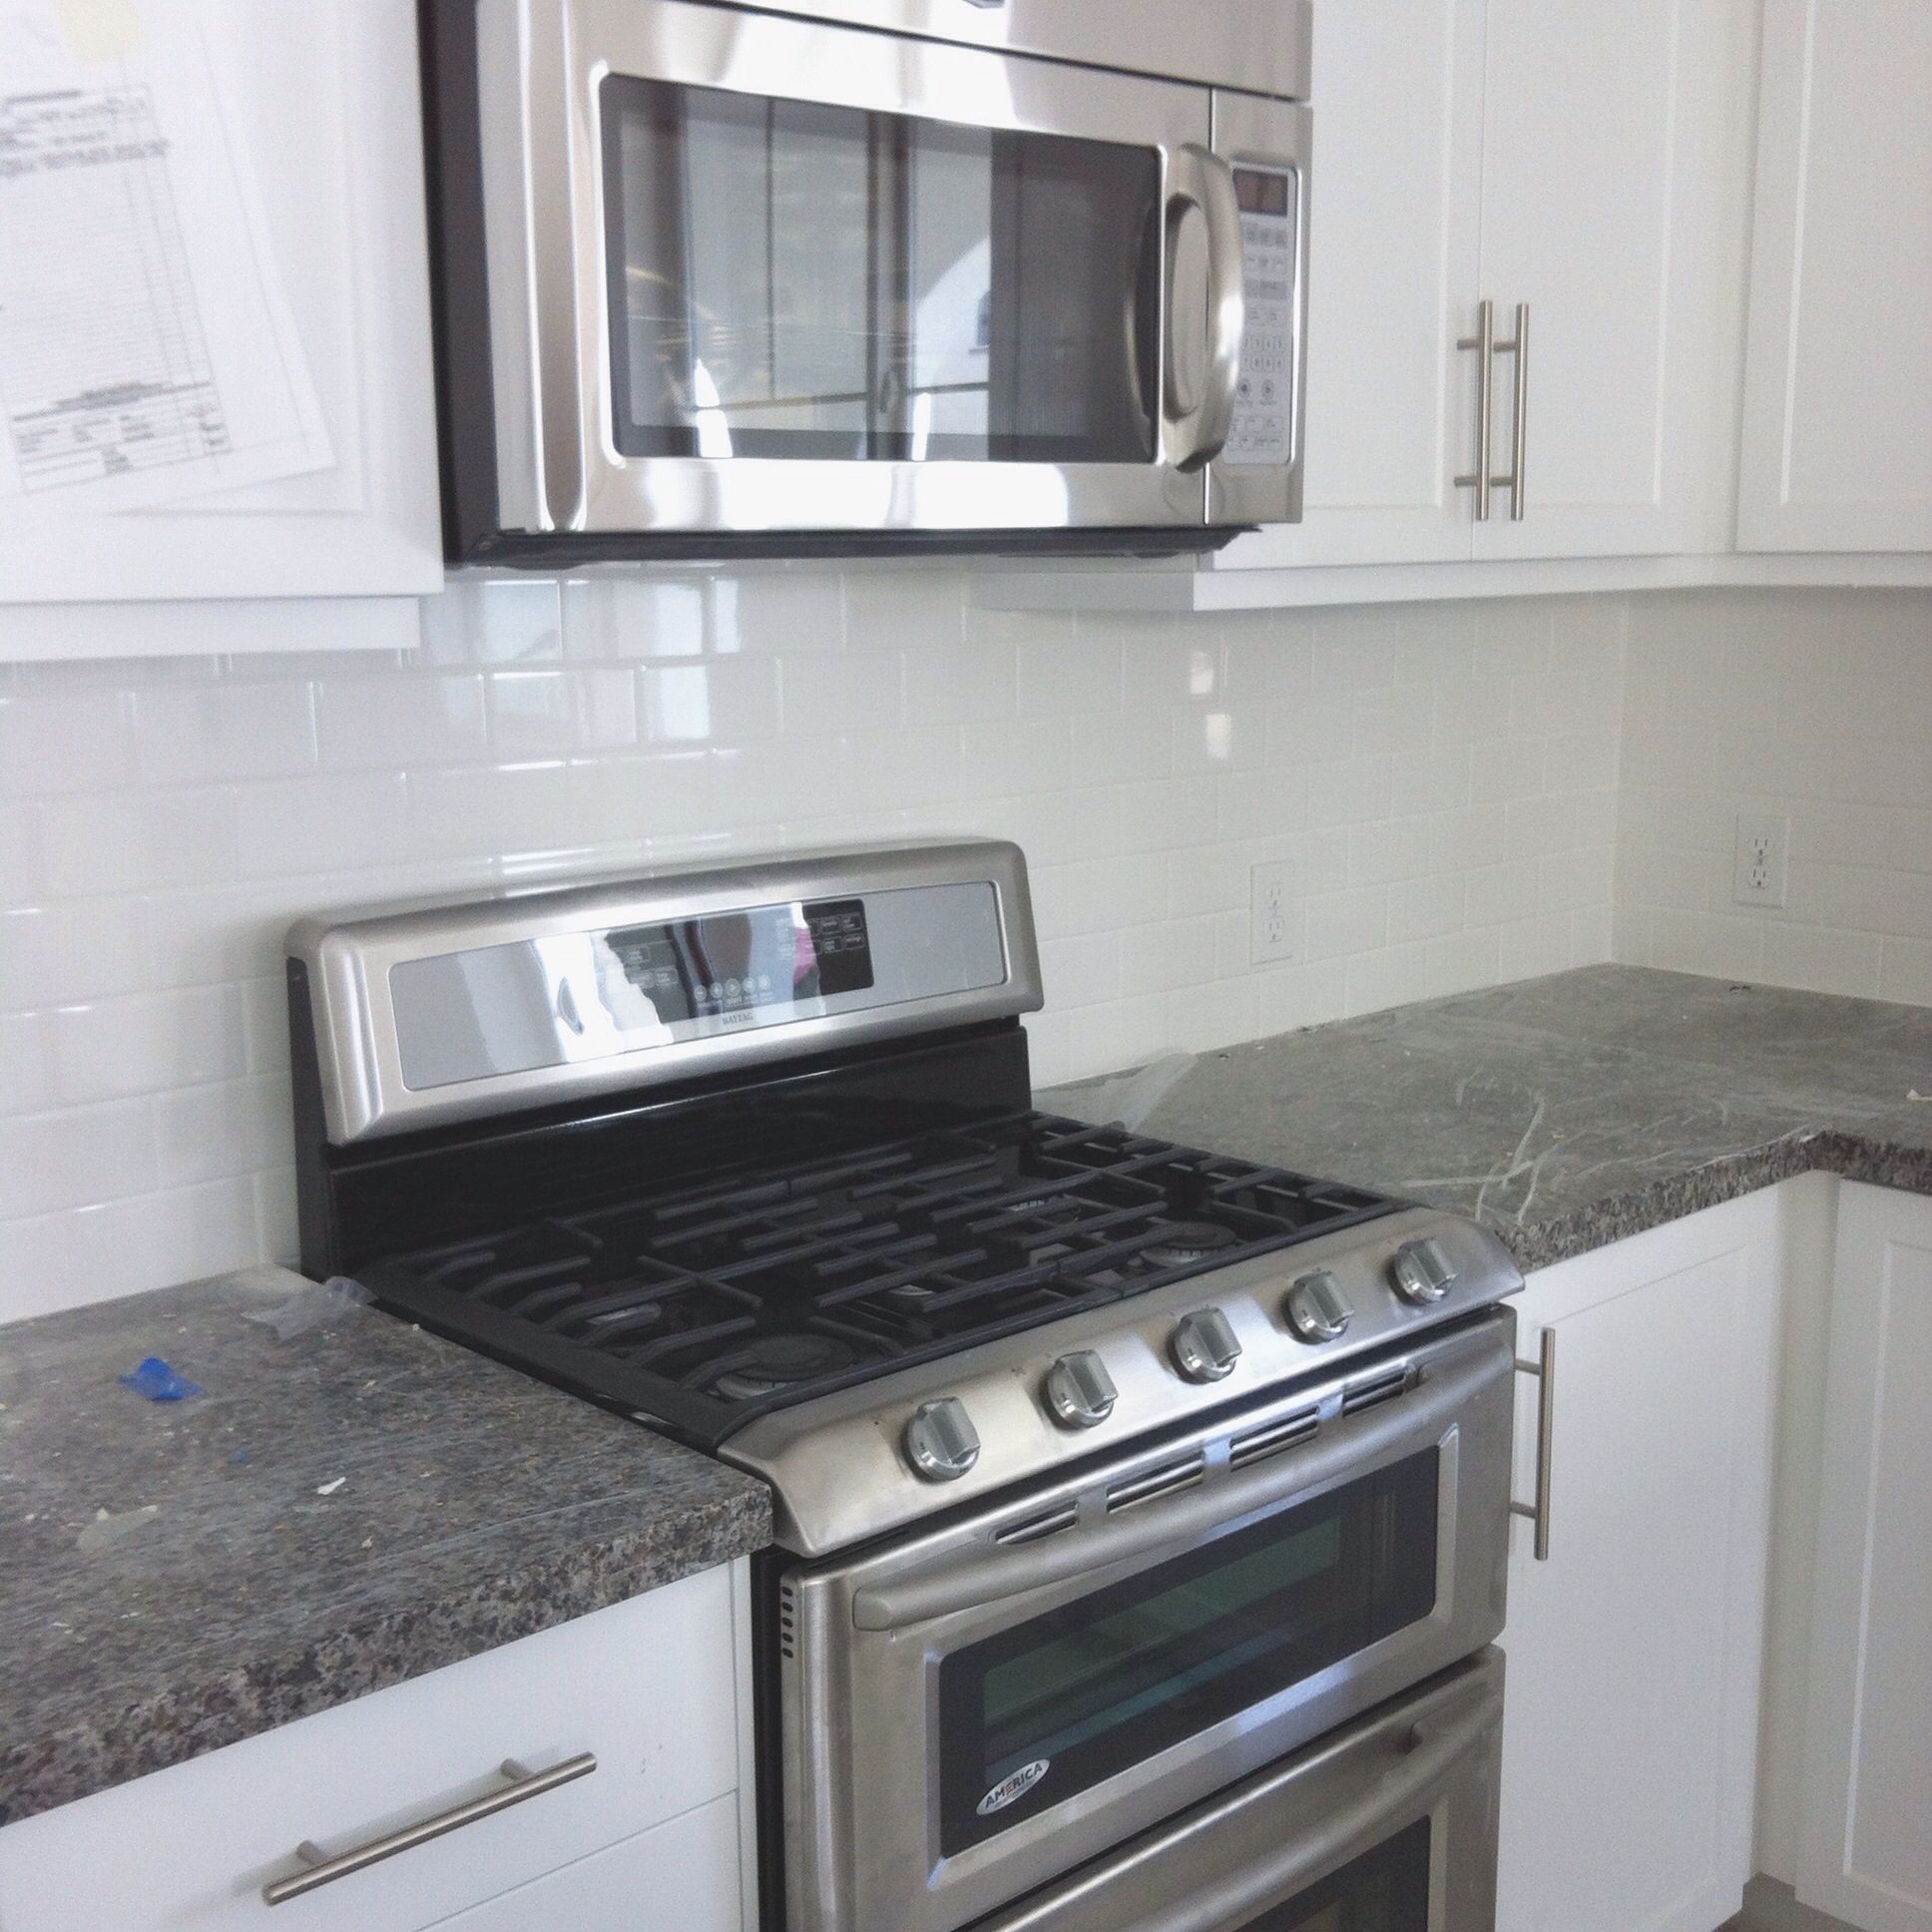 - White Subway Tile Backsplash And New Caledonia Granite Counter In